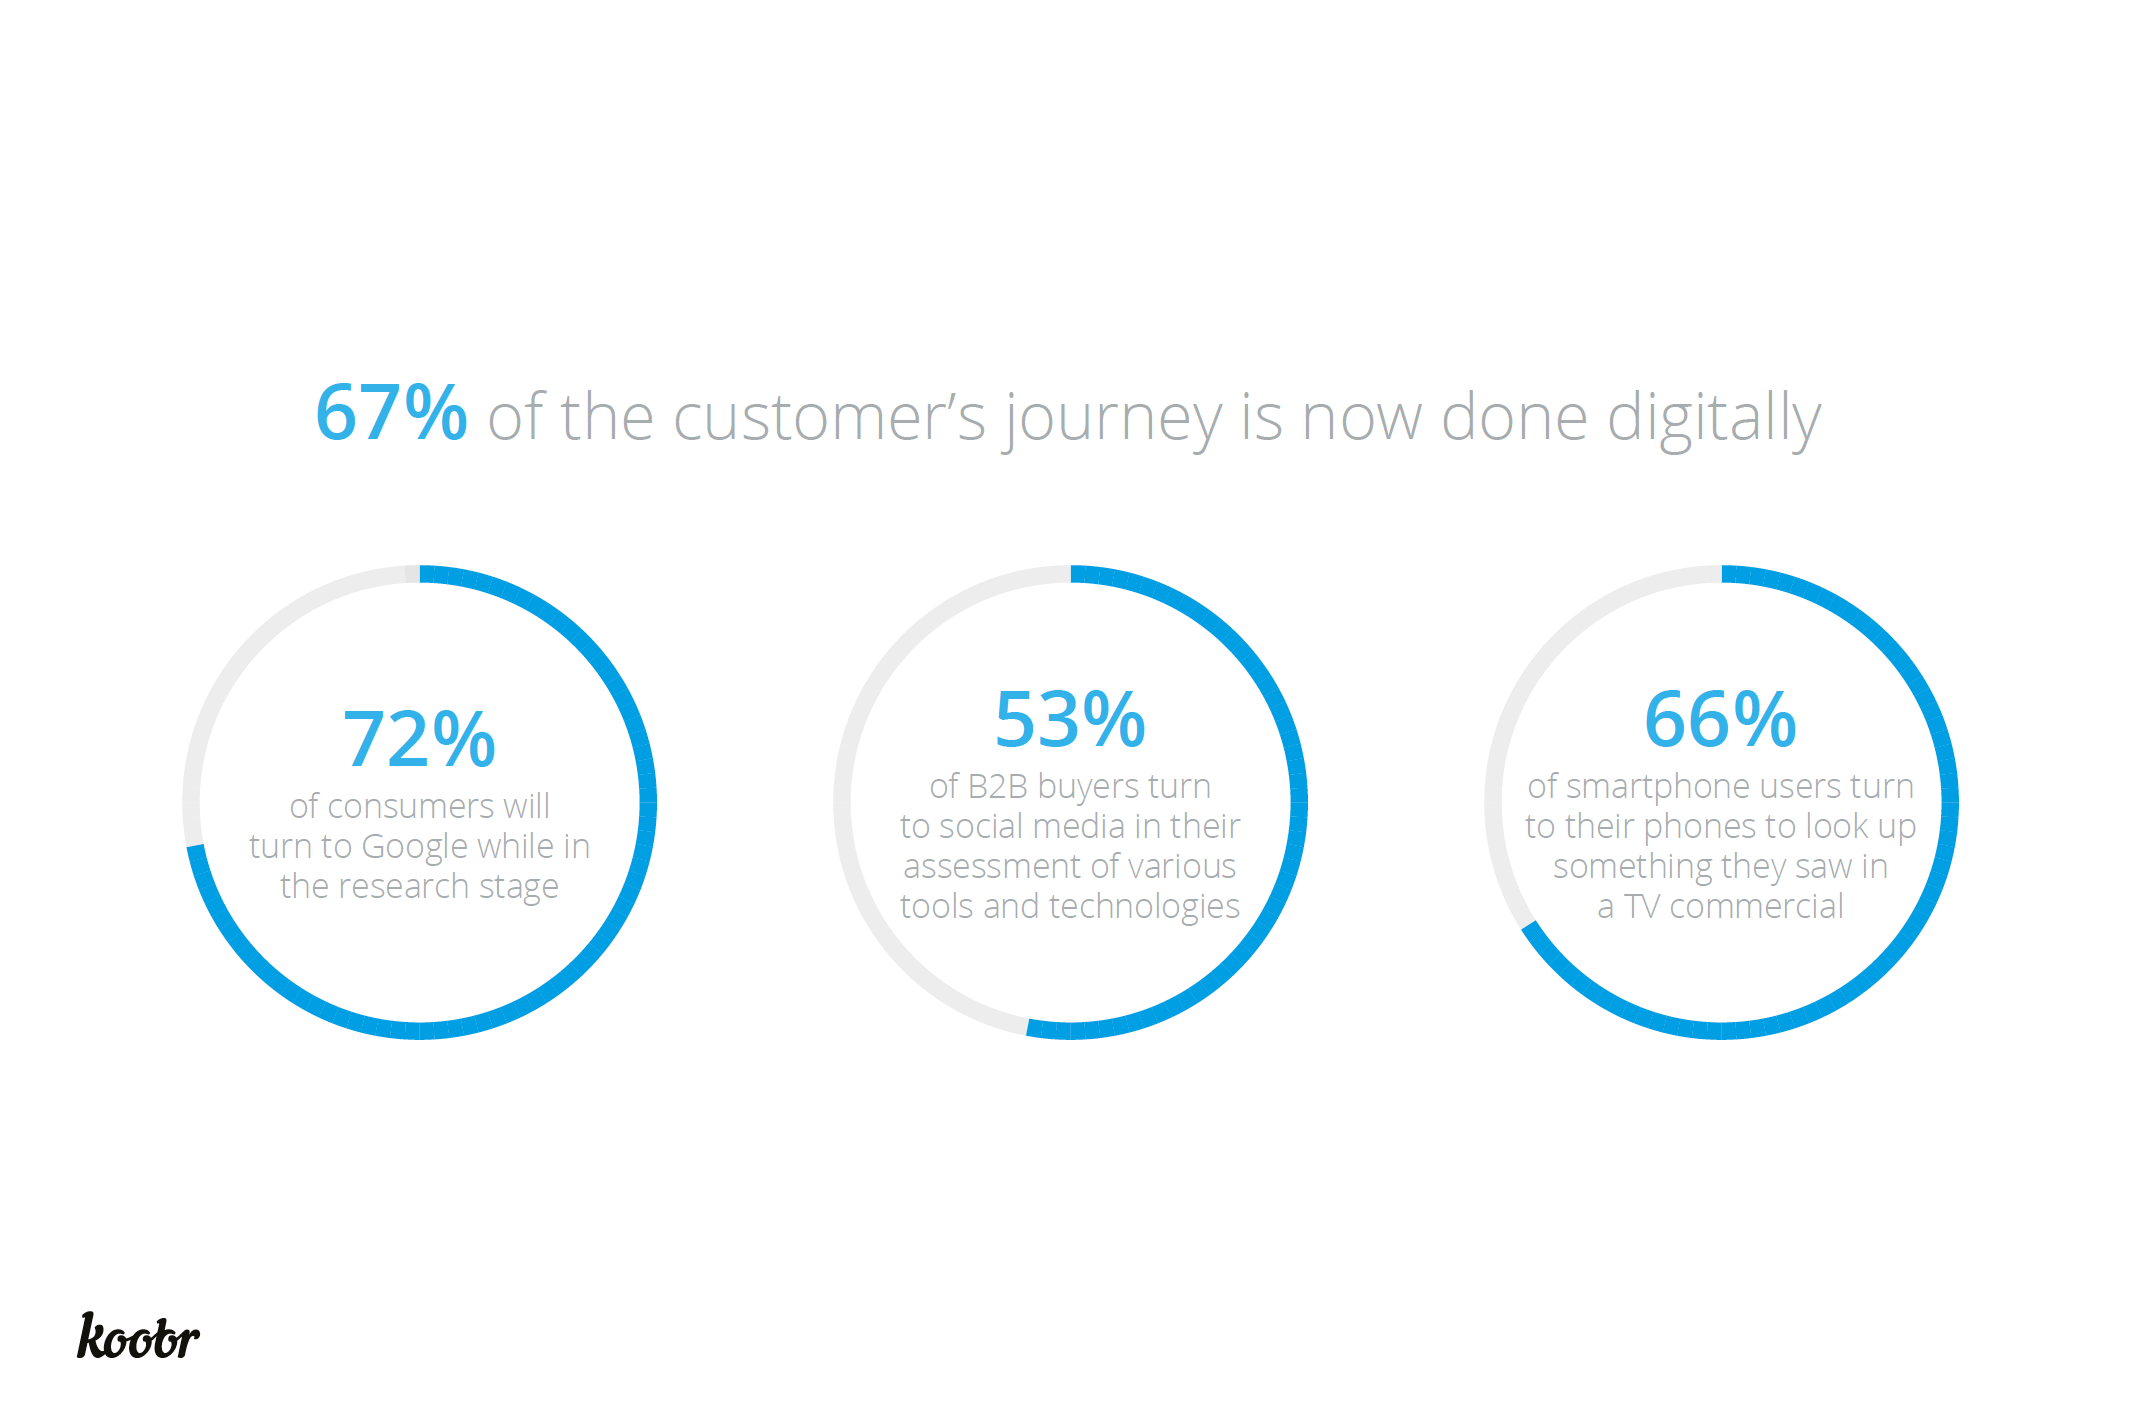 Customer journey statistics